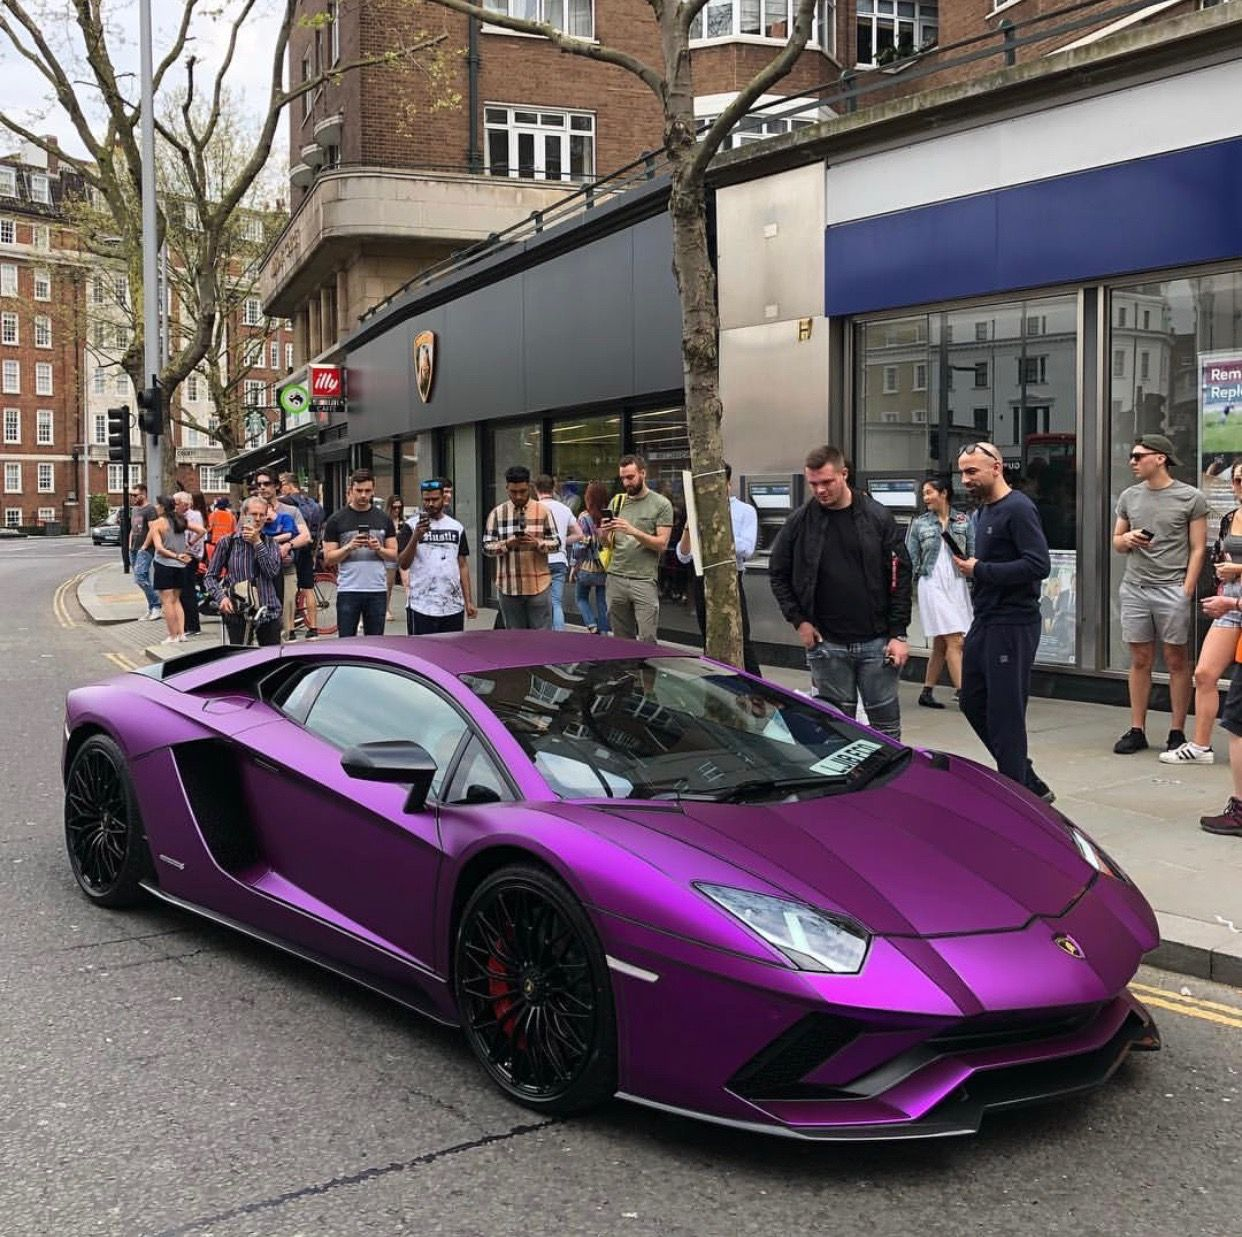 Lamborghini Aventador S Painted In Nero And Wrapped In Satin Purple